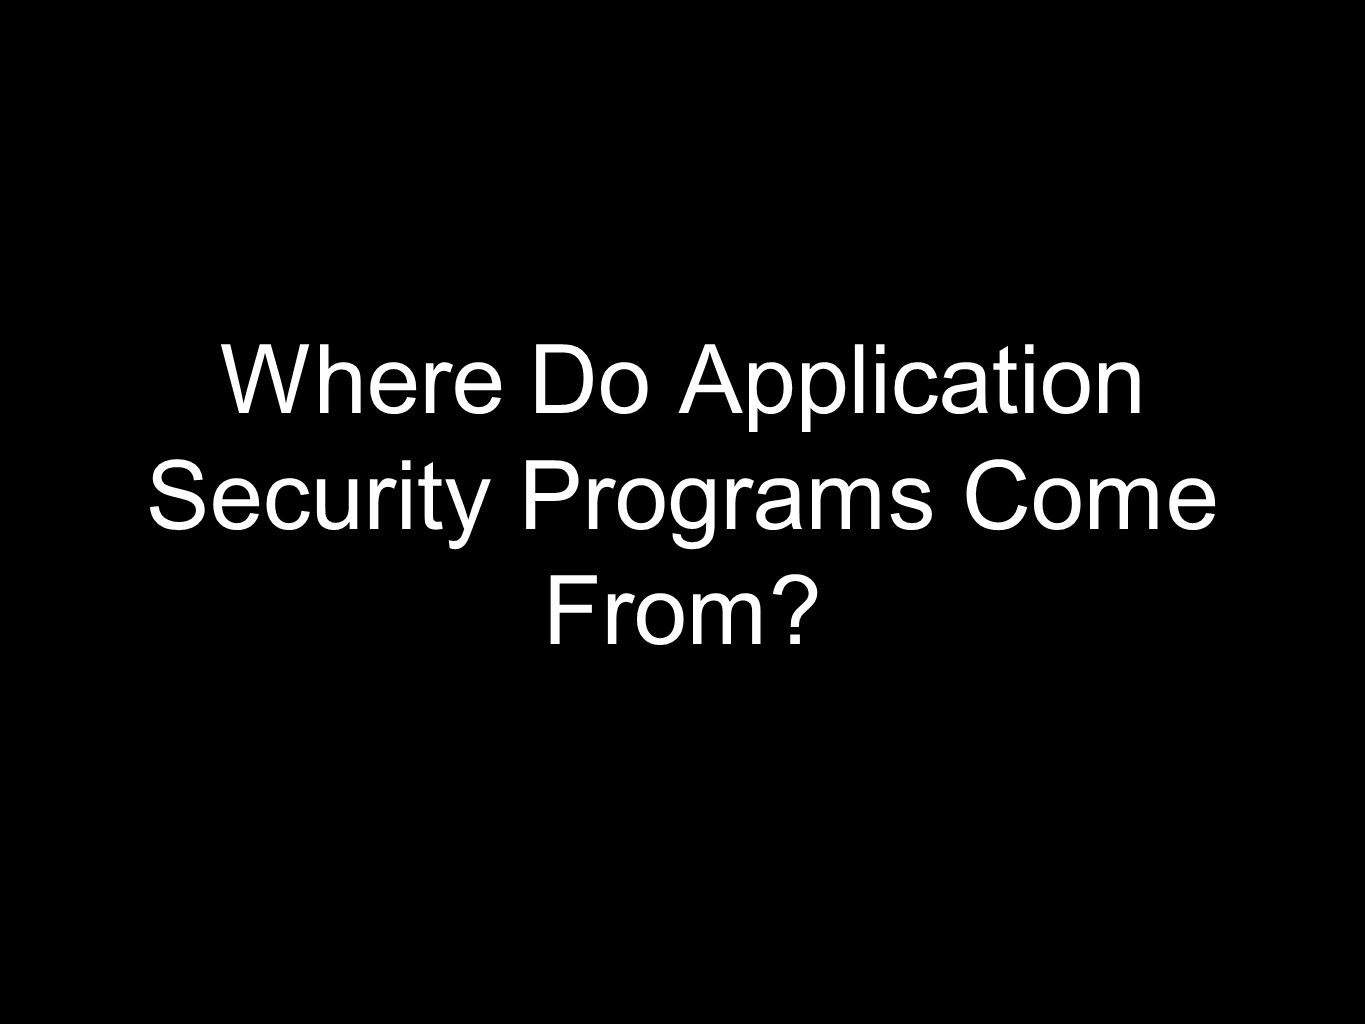 Where Do Application Security Programs Come From?